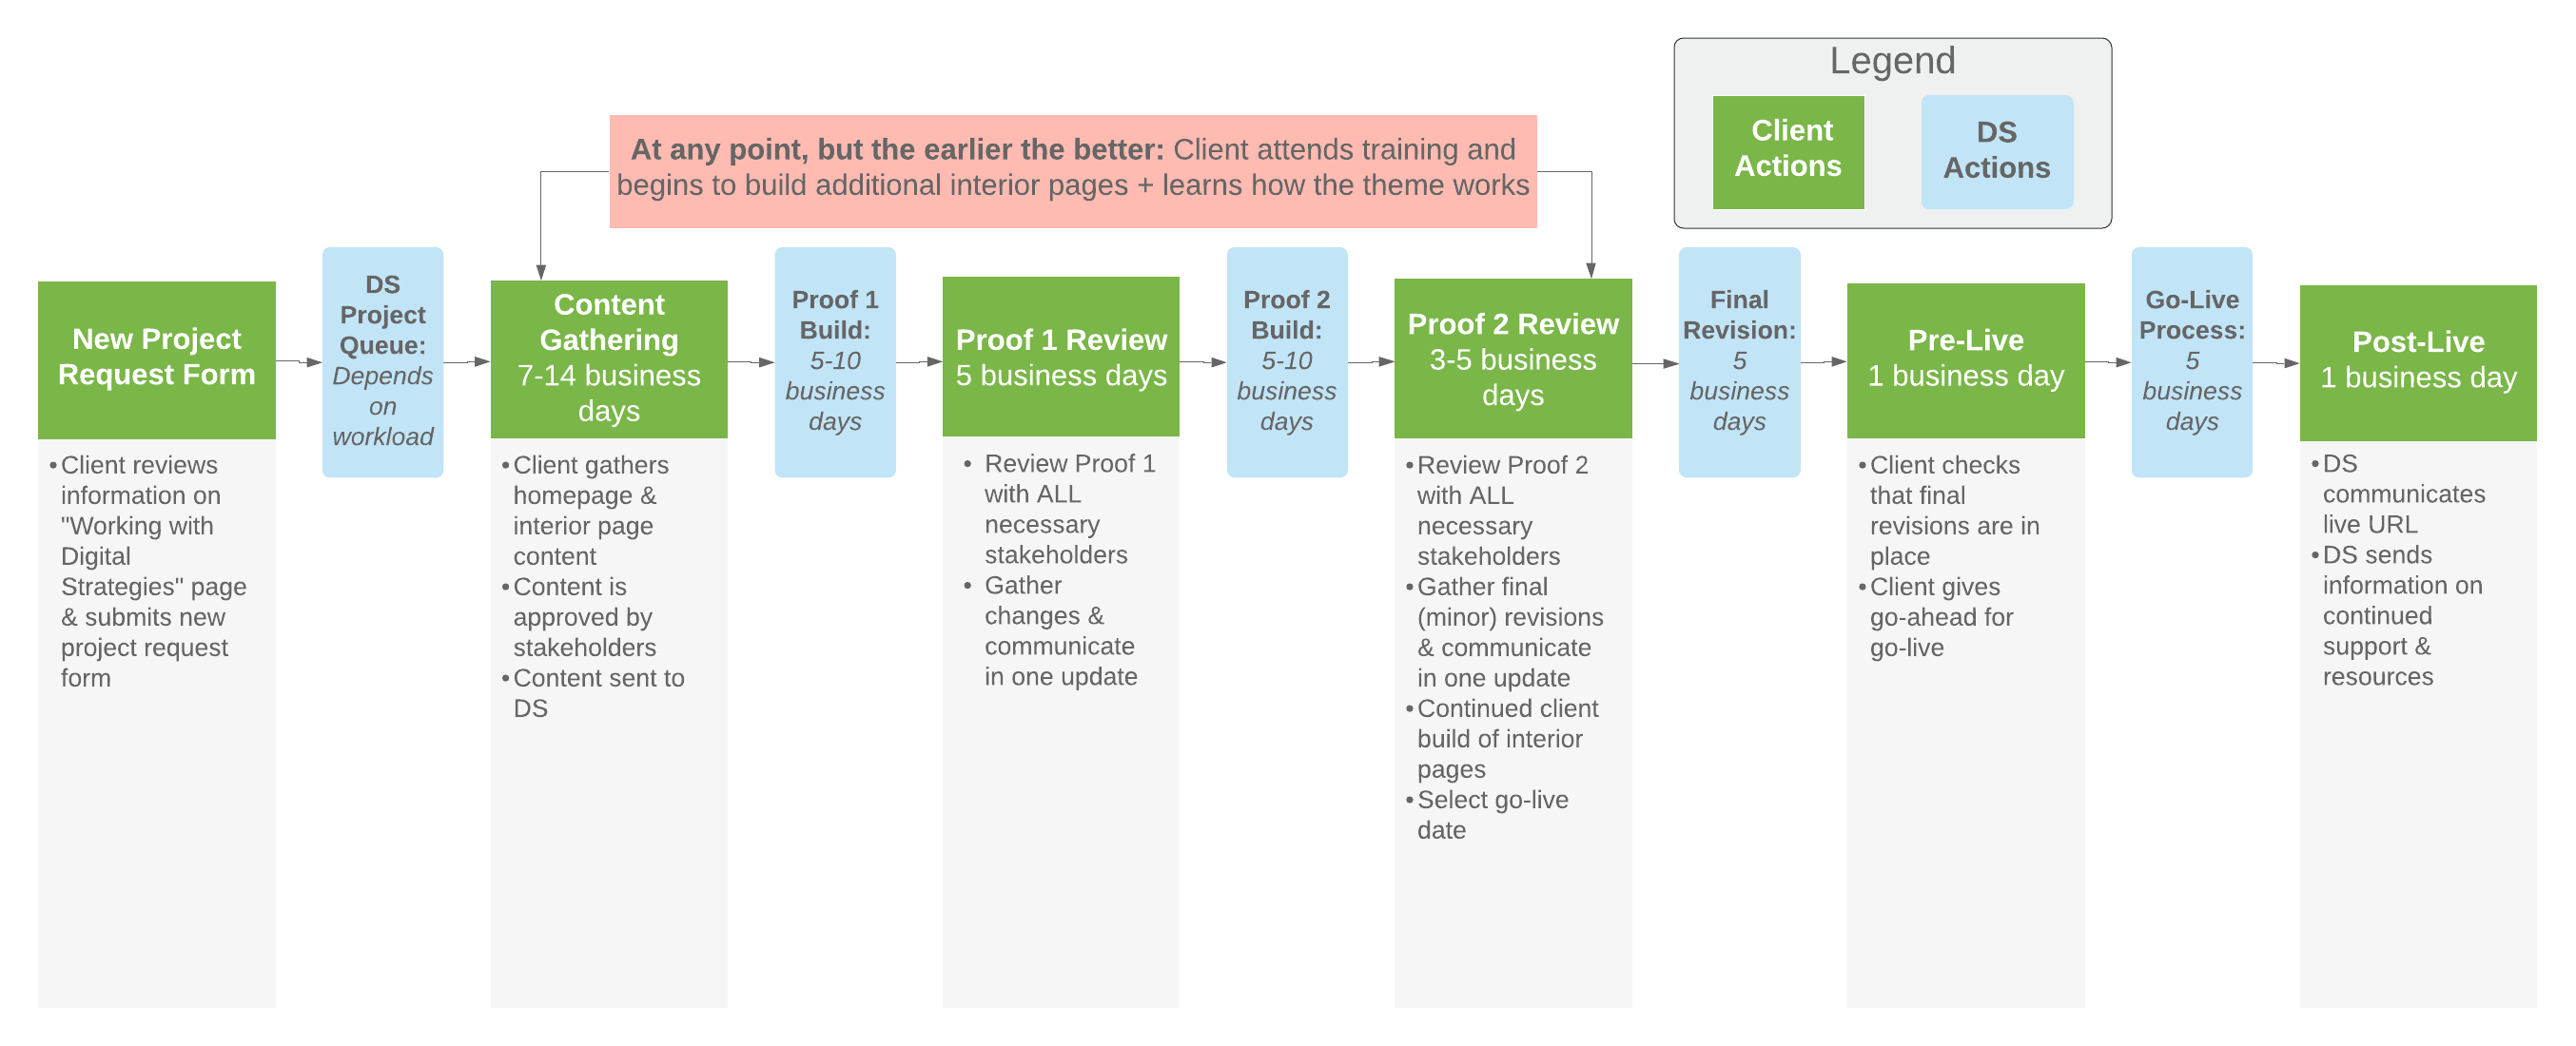 Tier 2 workflow for client